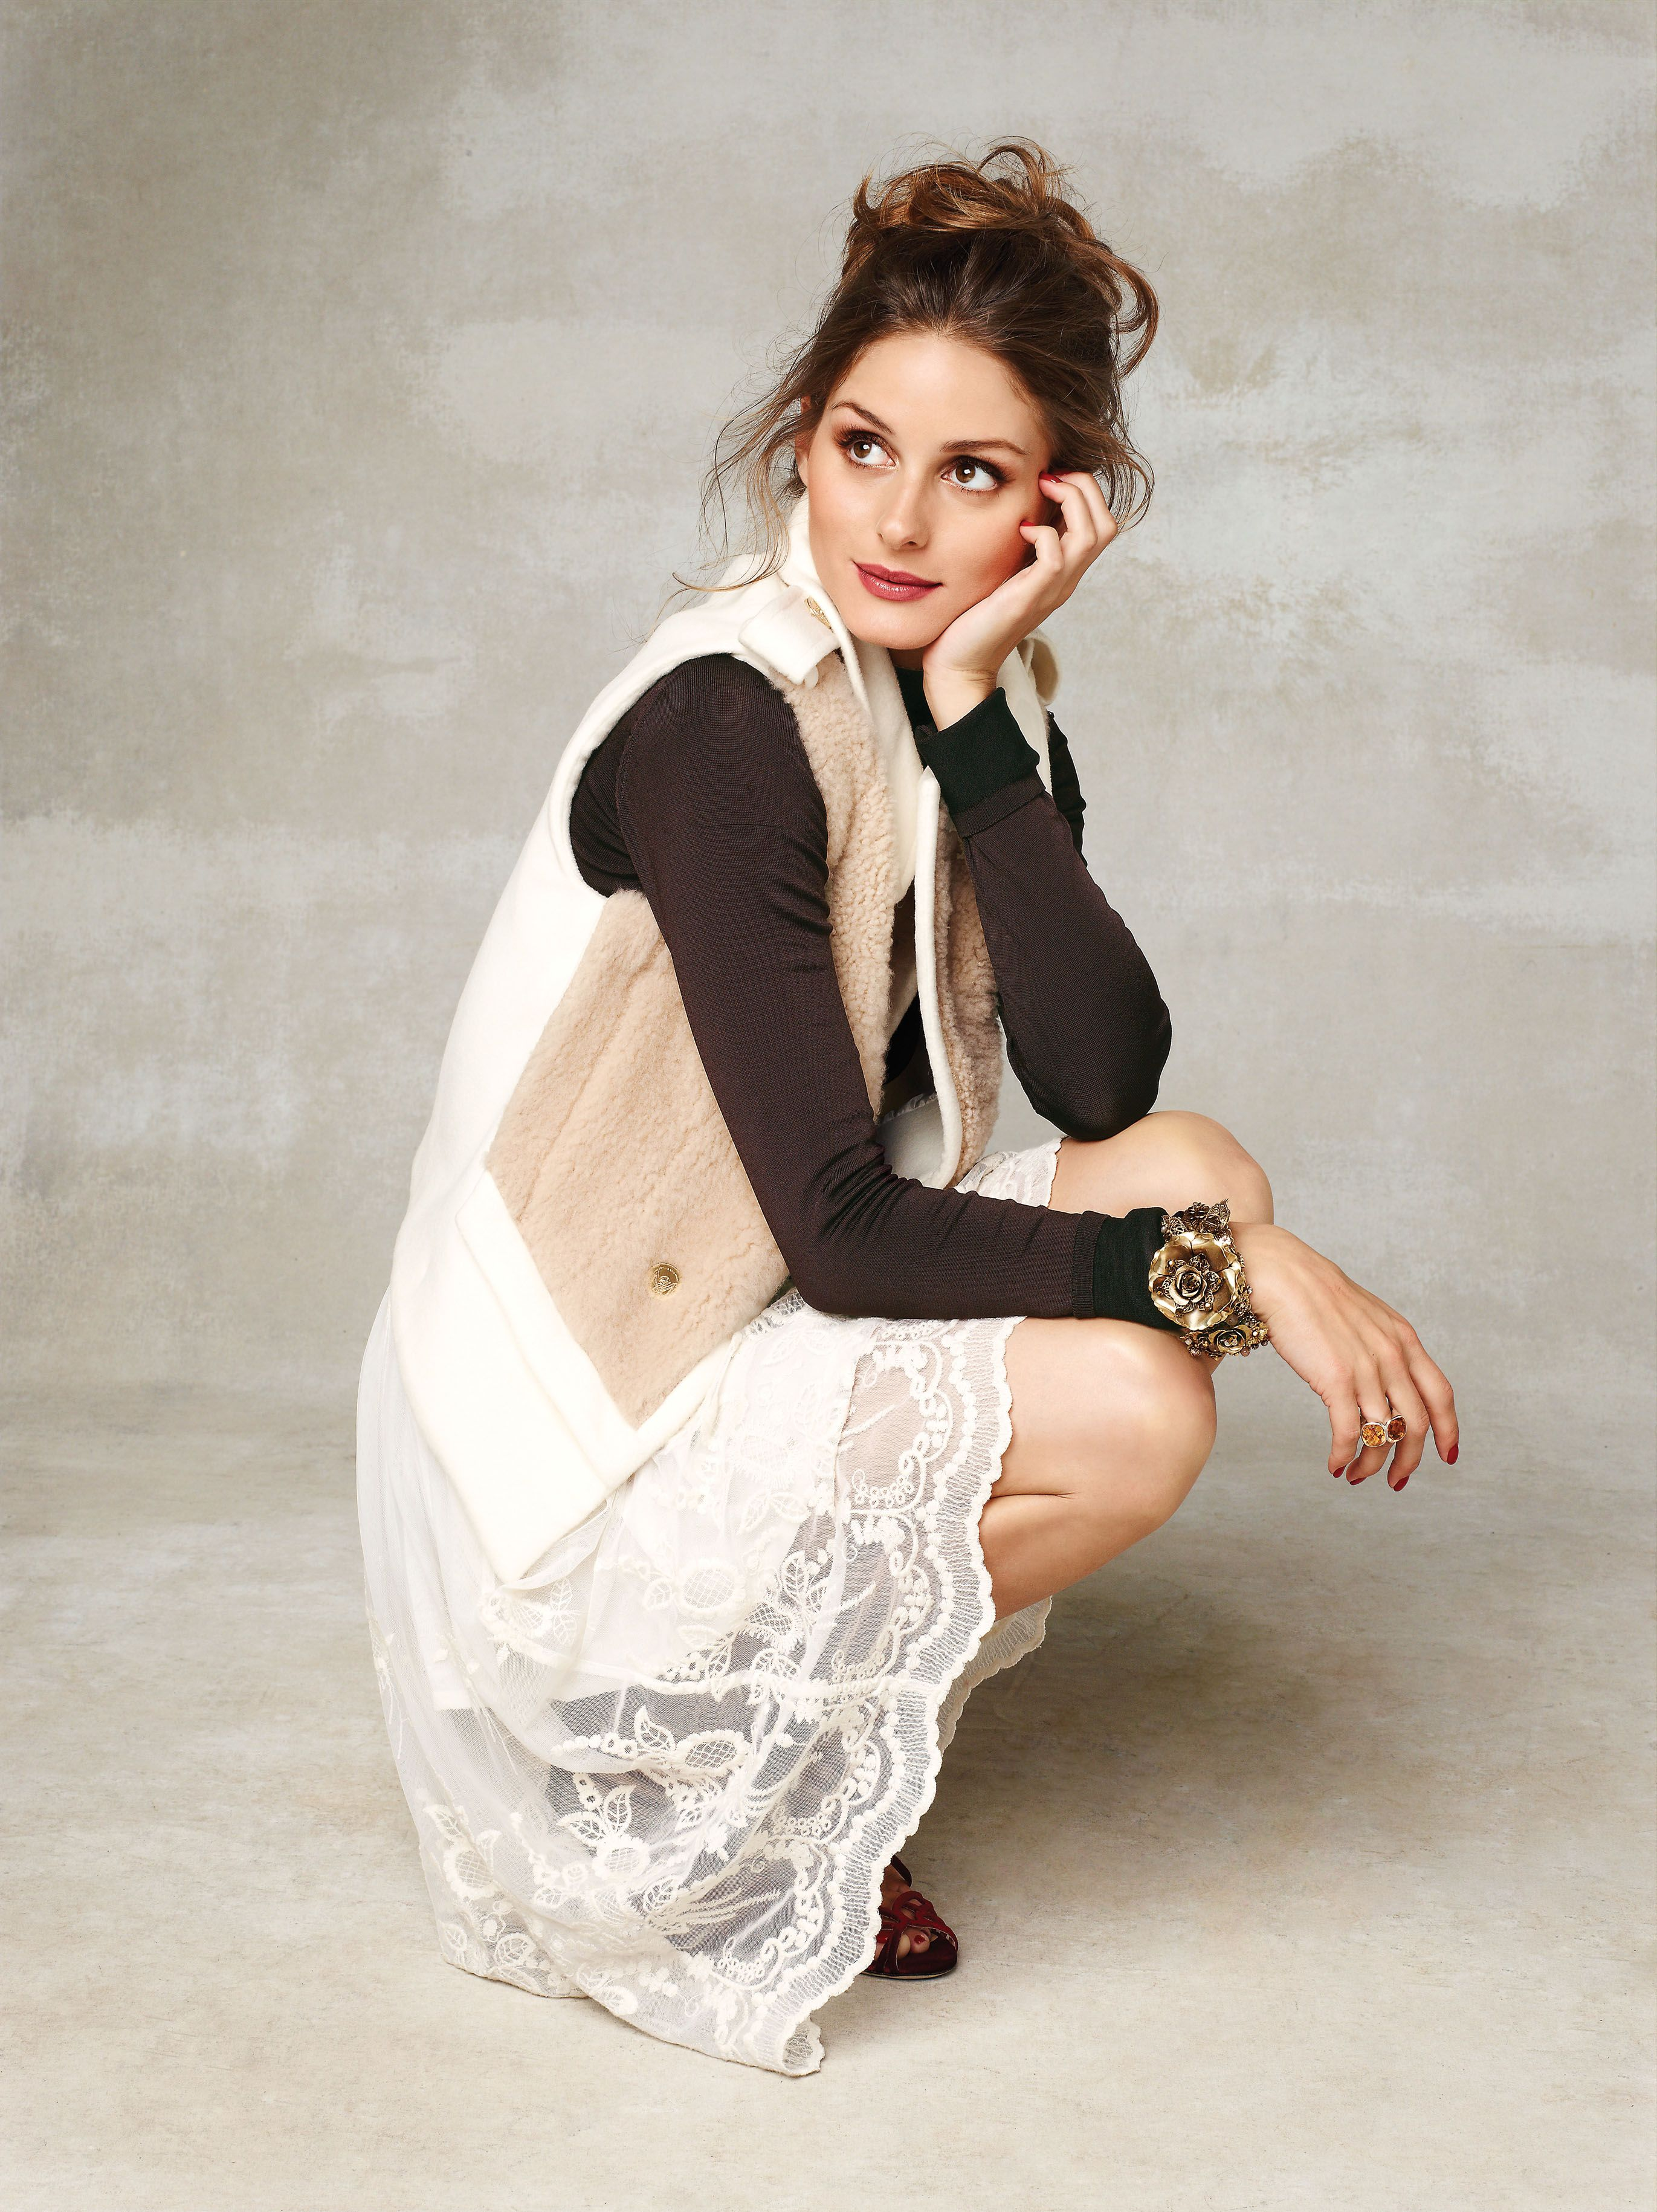 Olivia Palermo photographed for Page Six Magazine. Photo credit: Andrew Eccles for Page Six Magazine.